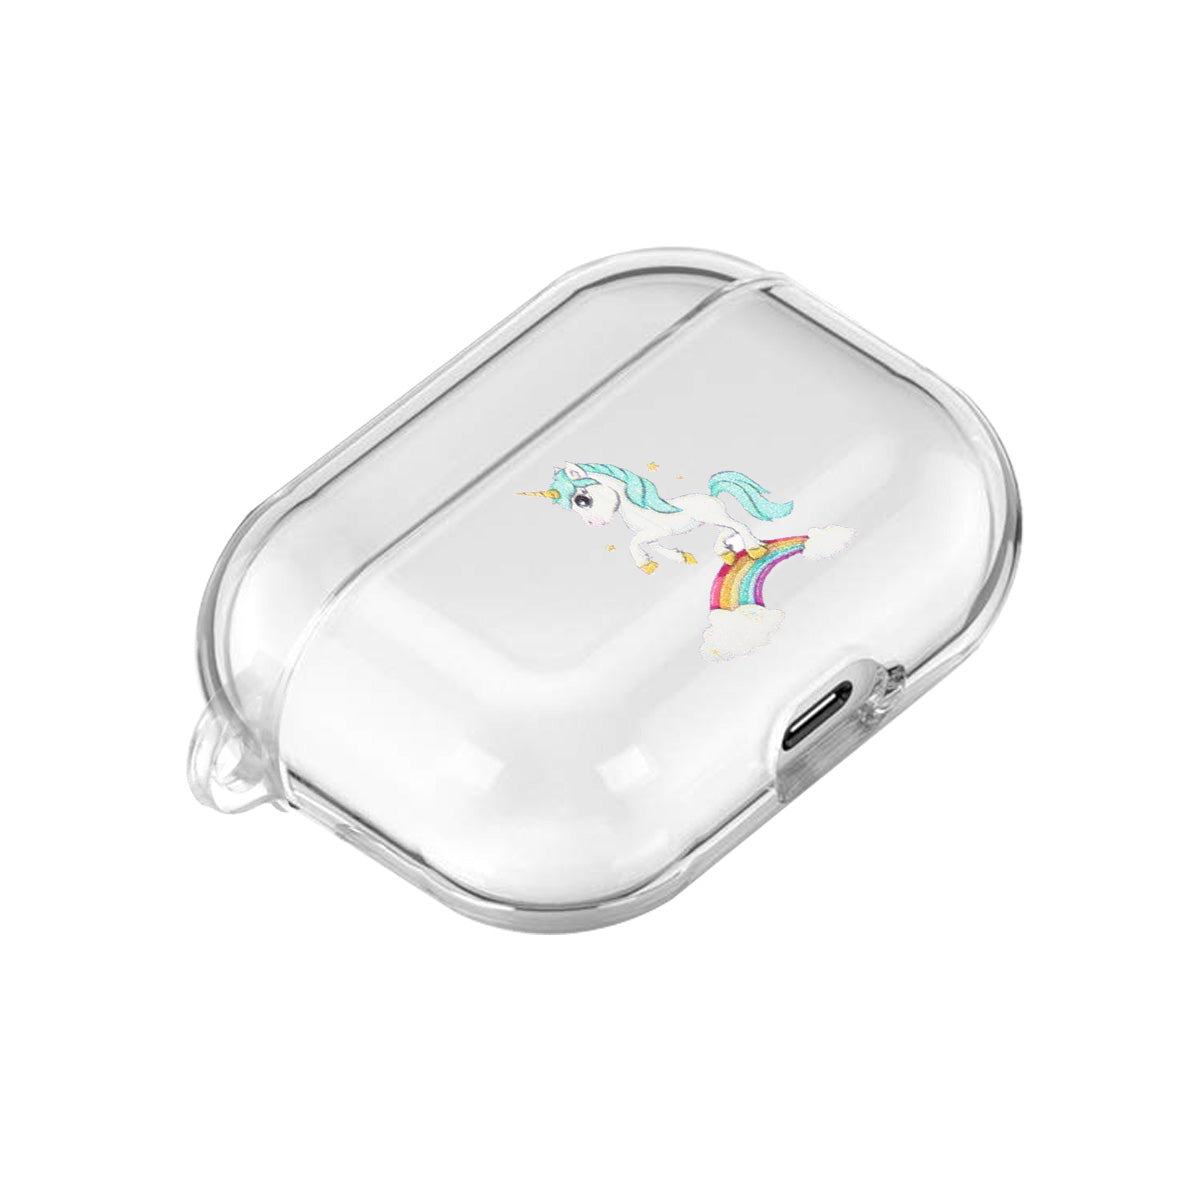 For AirPods Pro Headphones Case Full Protection Clear Cute Earphone Shell with Metal Hook 5 rainbow horses